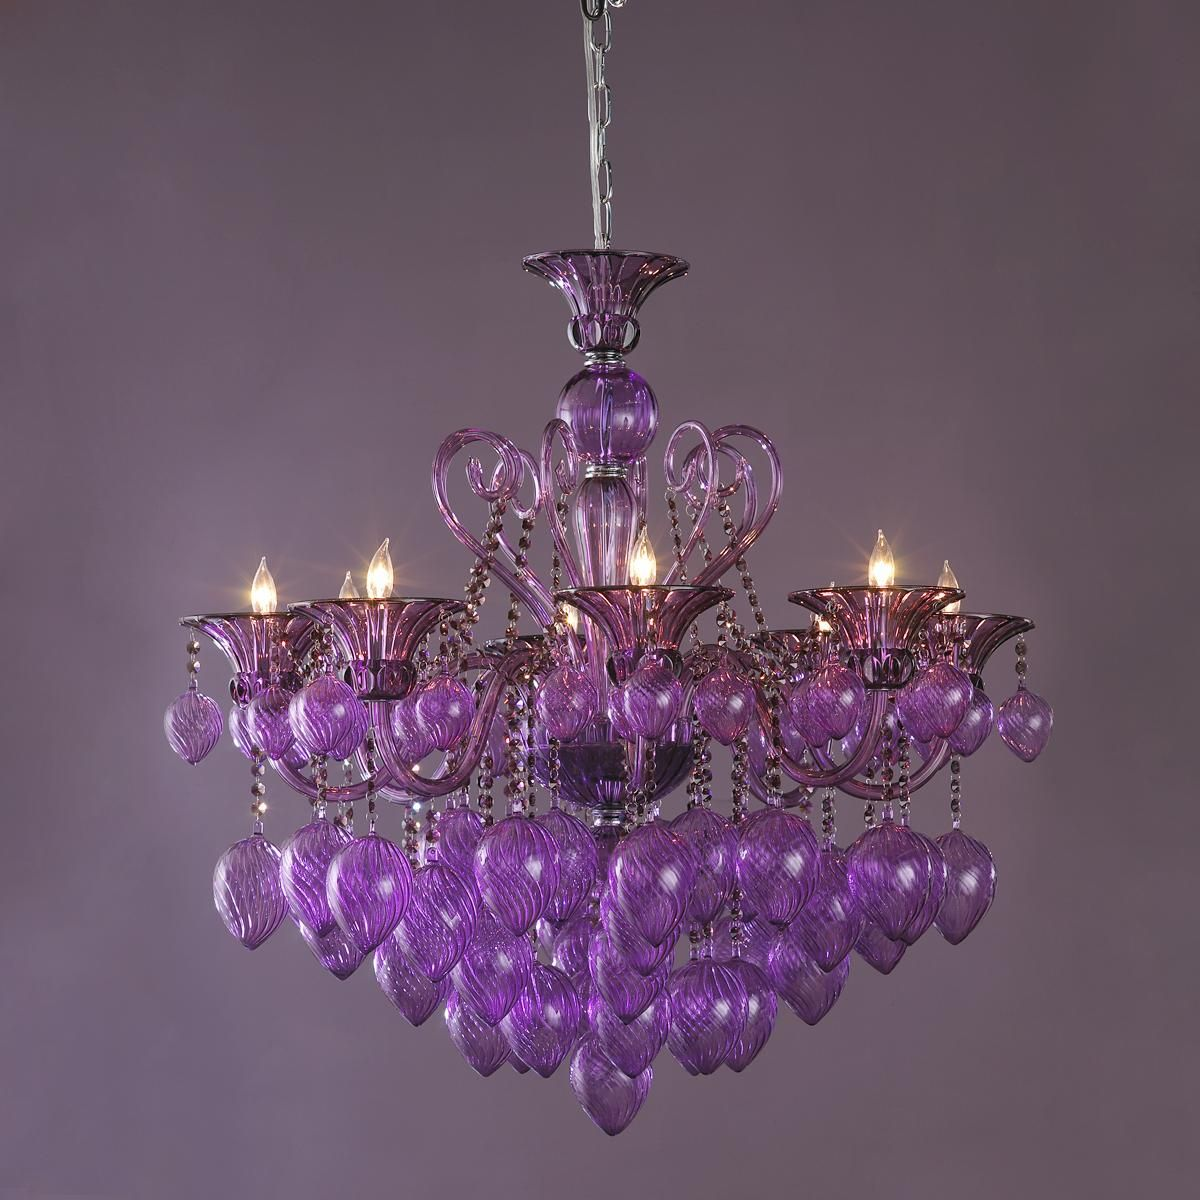 Oversized Murano Glass Chandelier As if one color isn't